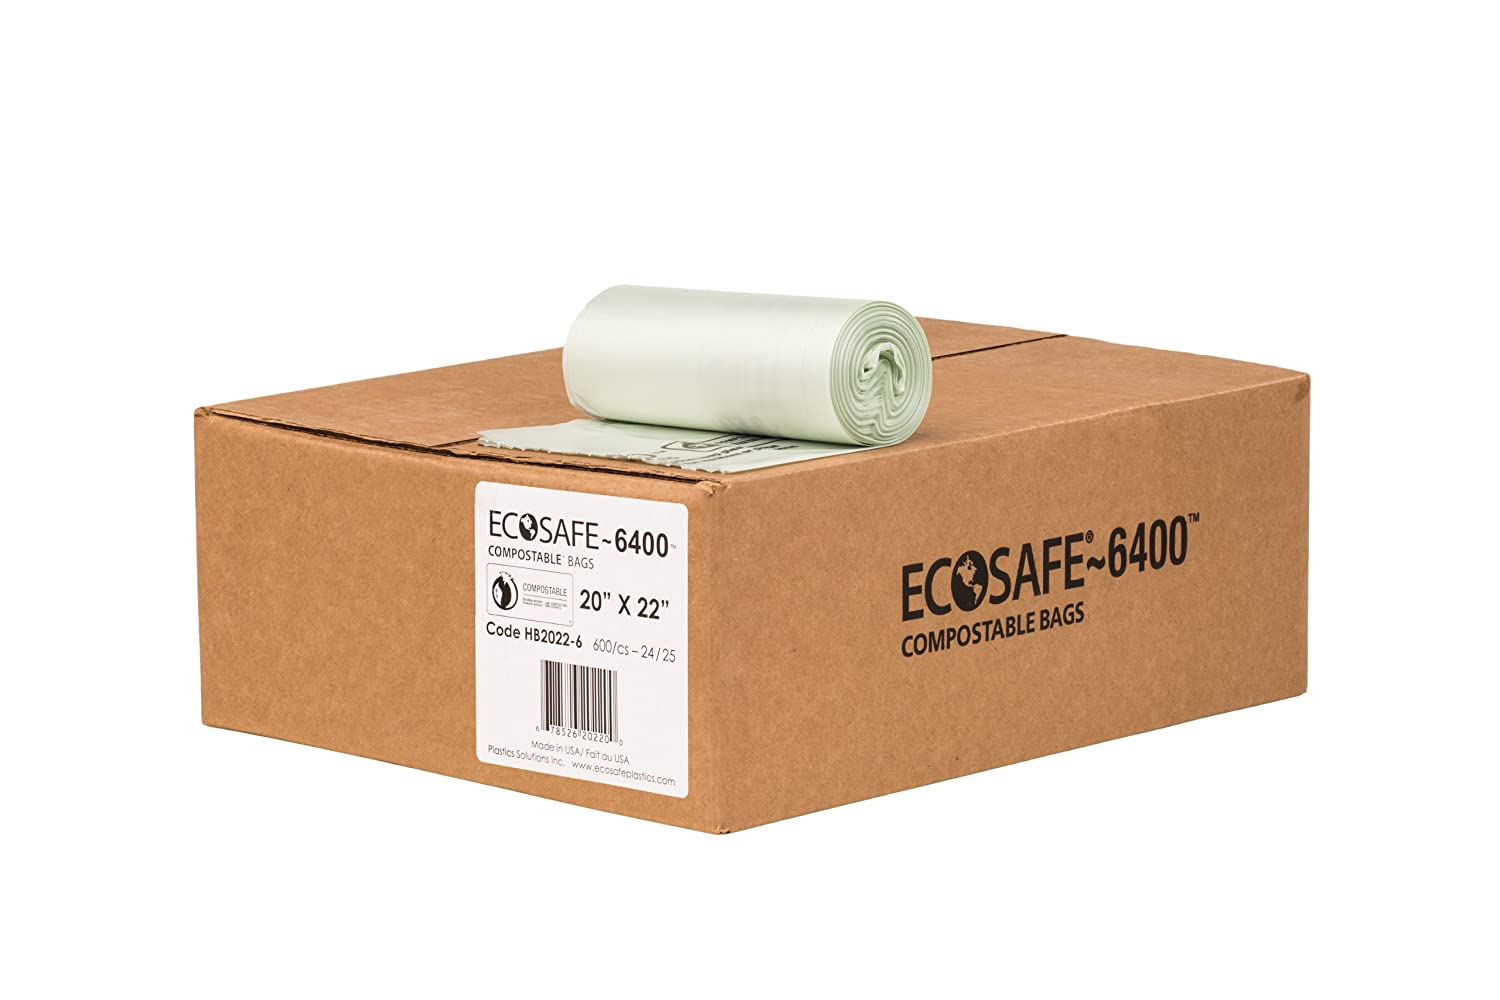 EcoSafe-6400 HB2022-6 Compostable Bag, Certified Compostable, 7-Gallon, Green (Pack of 600)